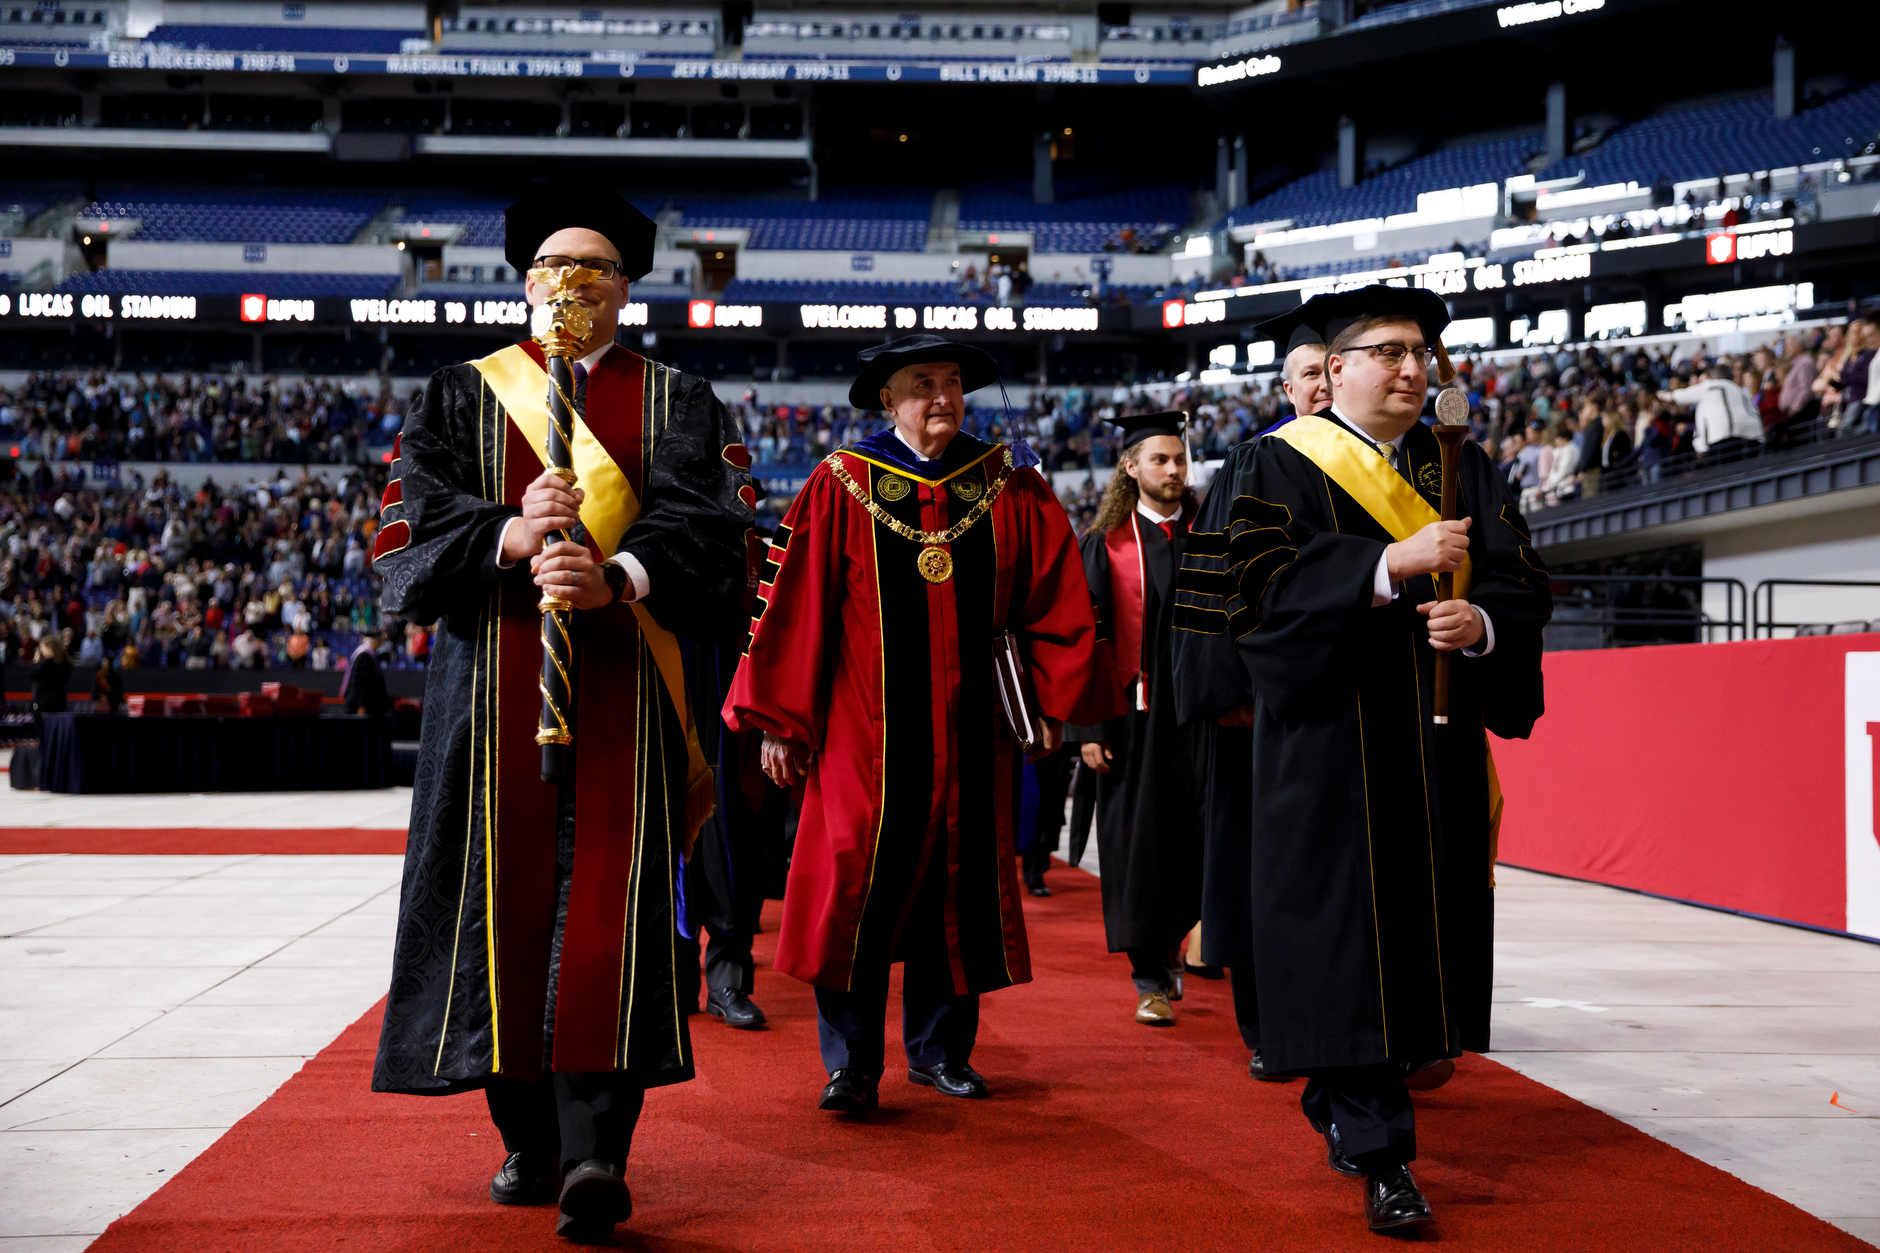 Indiana University President Michael A. McRobbie, center, walks in the recessional during the IUPUI Commencement at Lucas Oil Stadium on Saturday, May 11, 2019. (James Brosher/Indiana University)